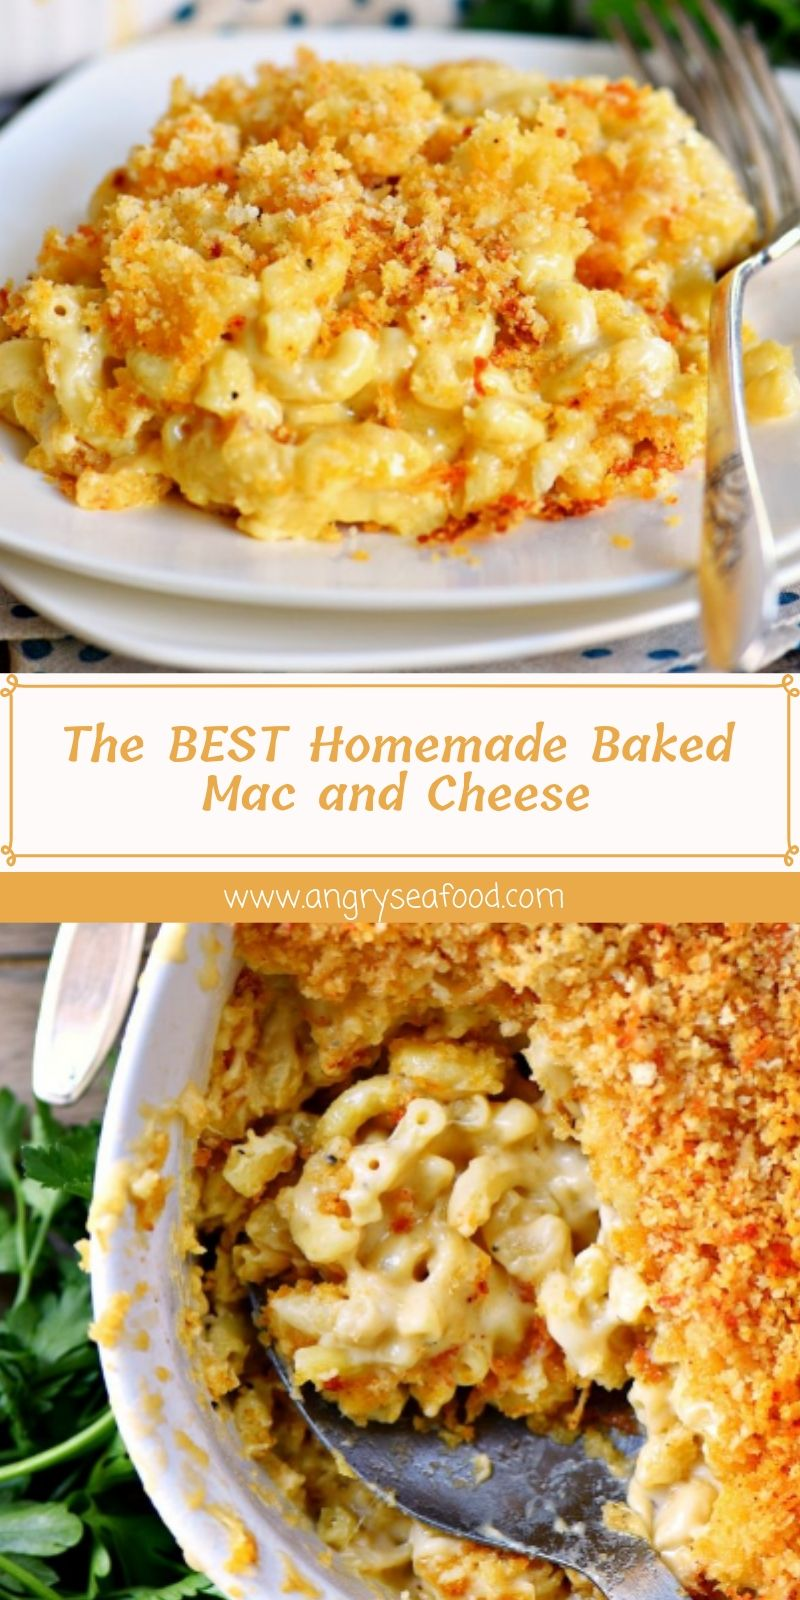 The BEST Homemade Baked Mac and Cheese